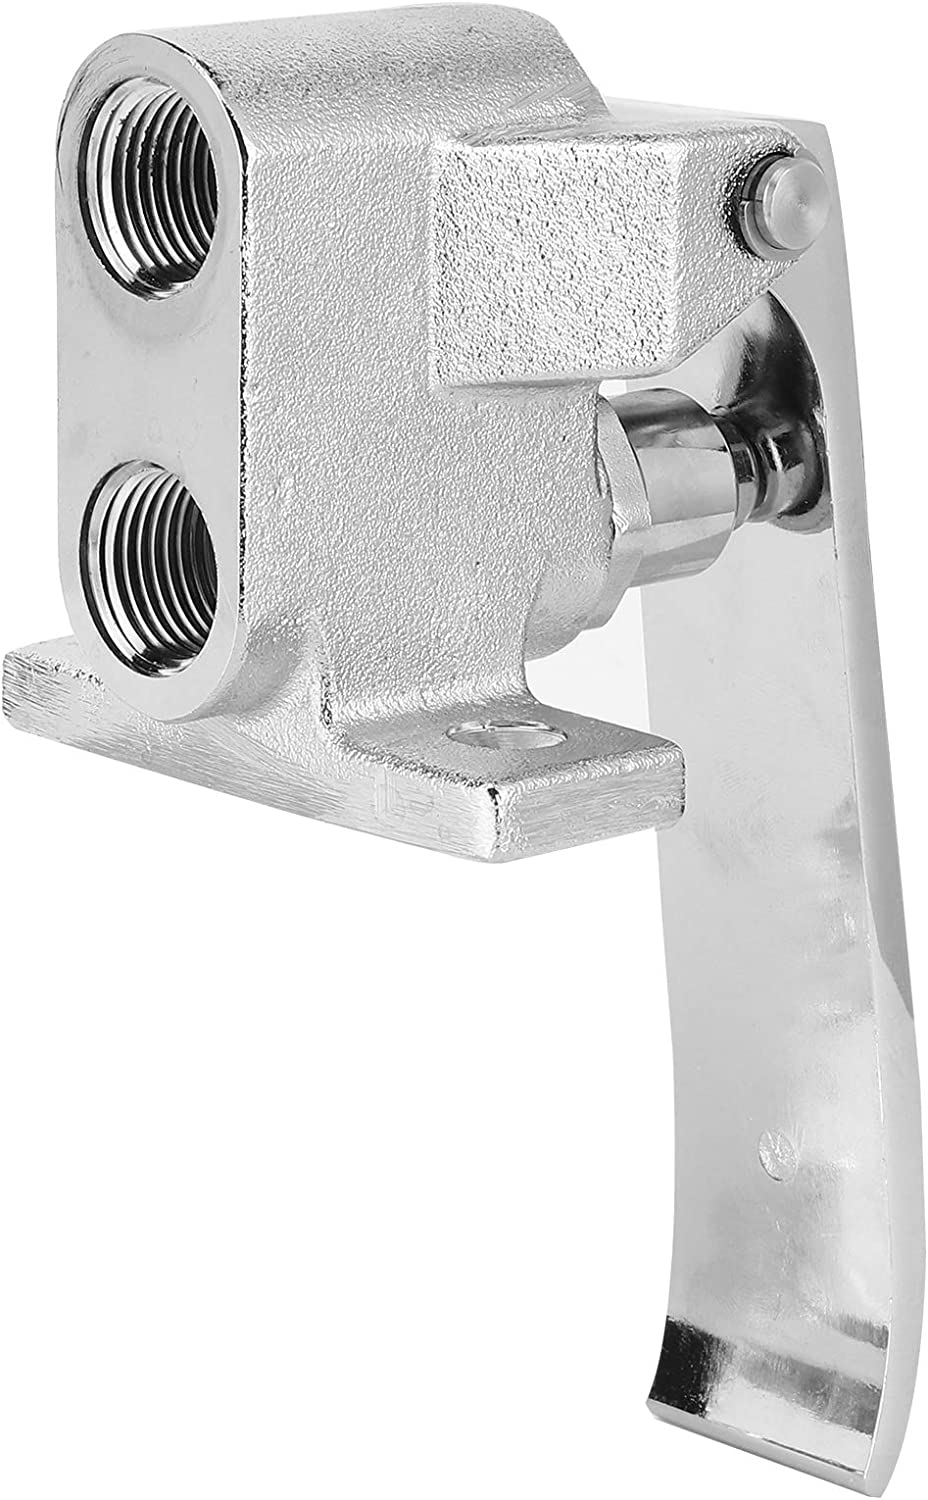 Pedal Valve Faucet R Knee Online Sale price limited product Preservative